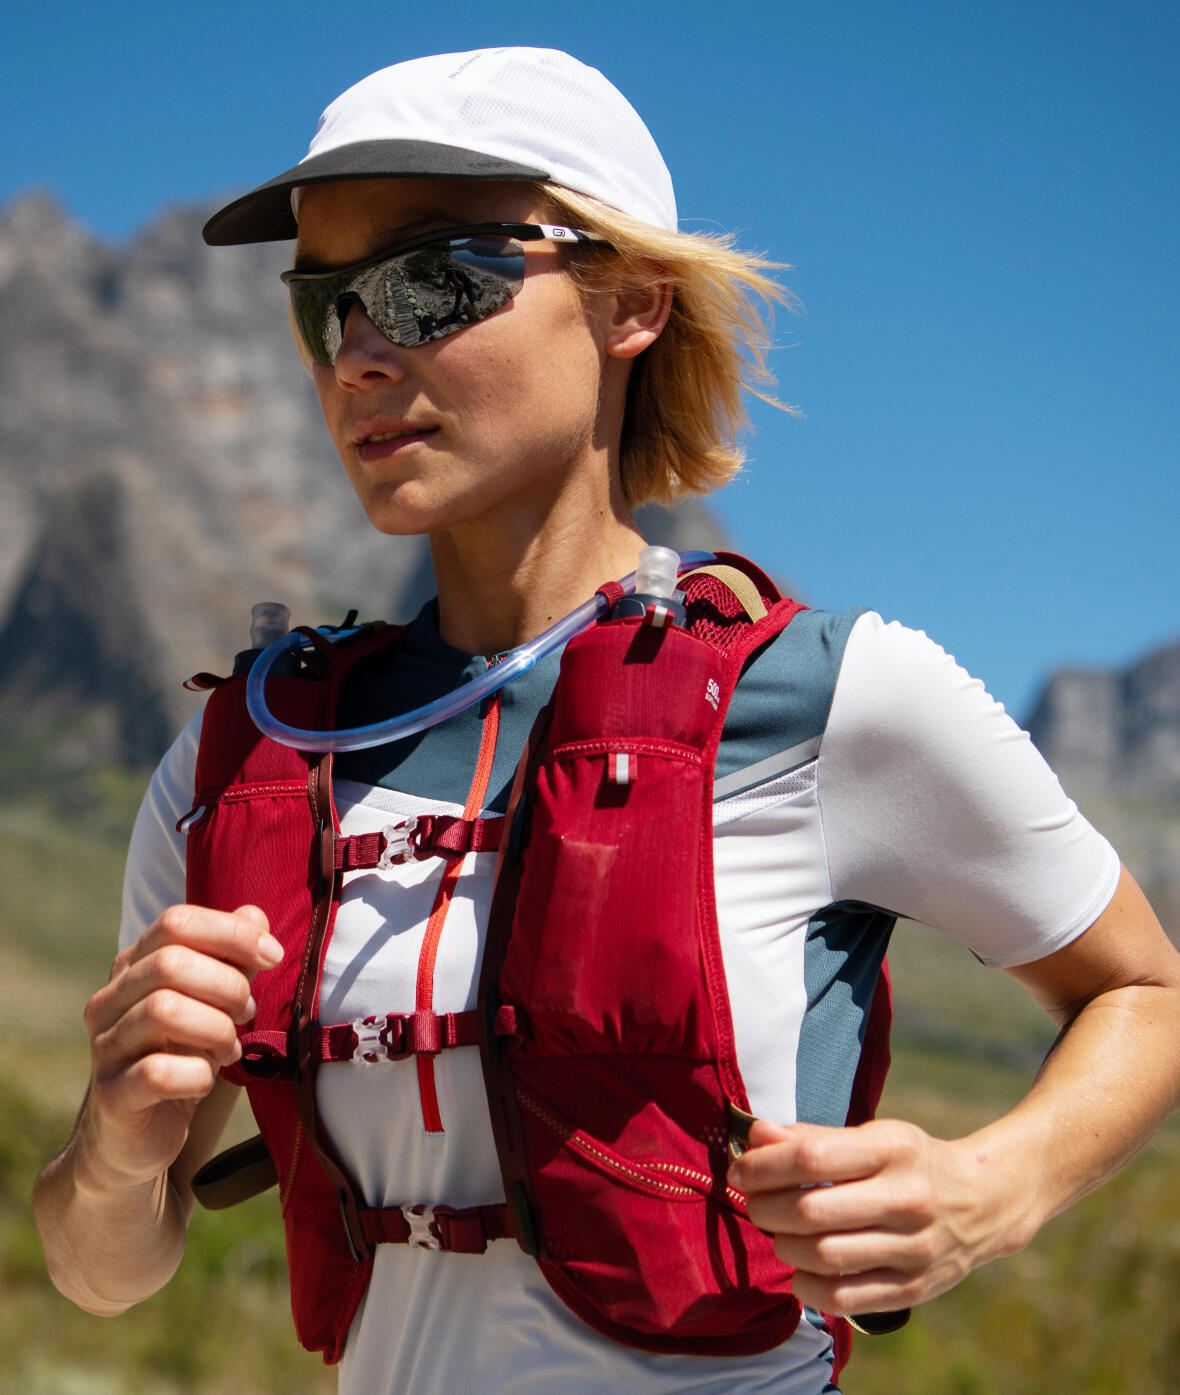 woman running with cap, sunglasses and hydration vest because of hot weather